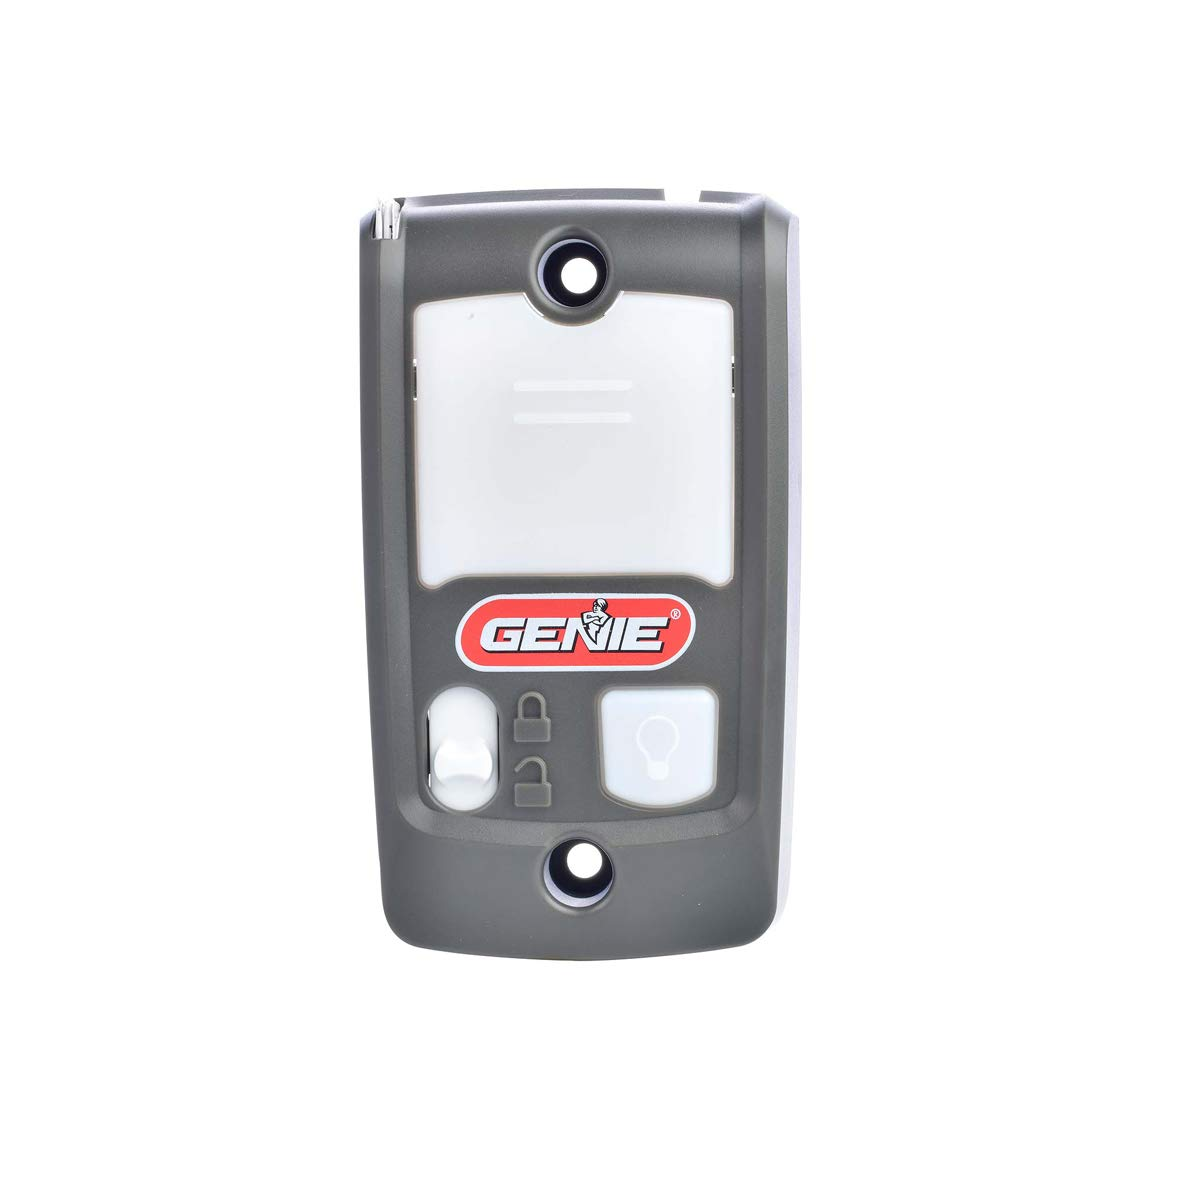 Genie Series II Garage Door Opener Wall Console - Sure-Lock/Vacation Lock for Extra Security - Light Control Button -  Compatible with All Genie Series II Garage Door Openers - Model GBWCSL2 by Genie